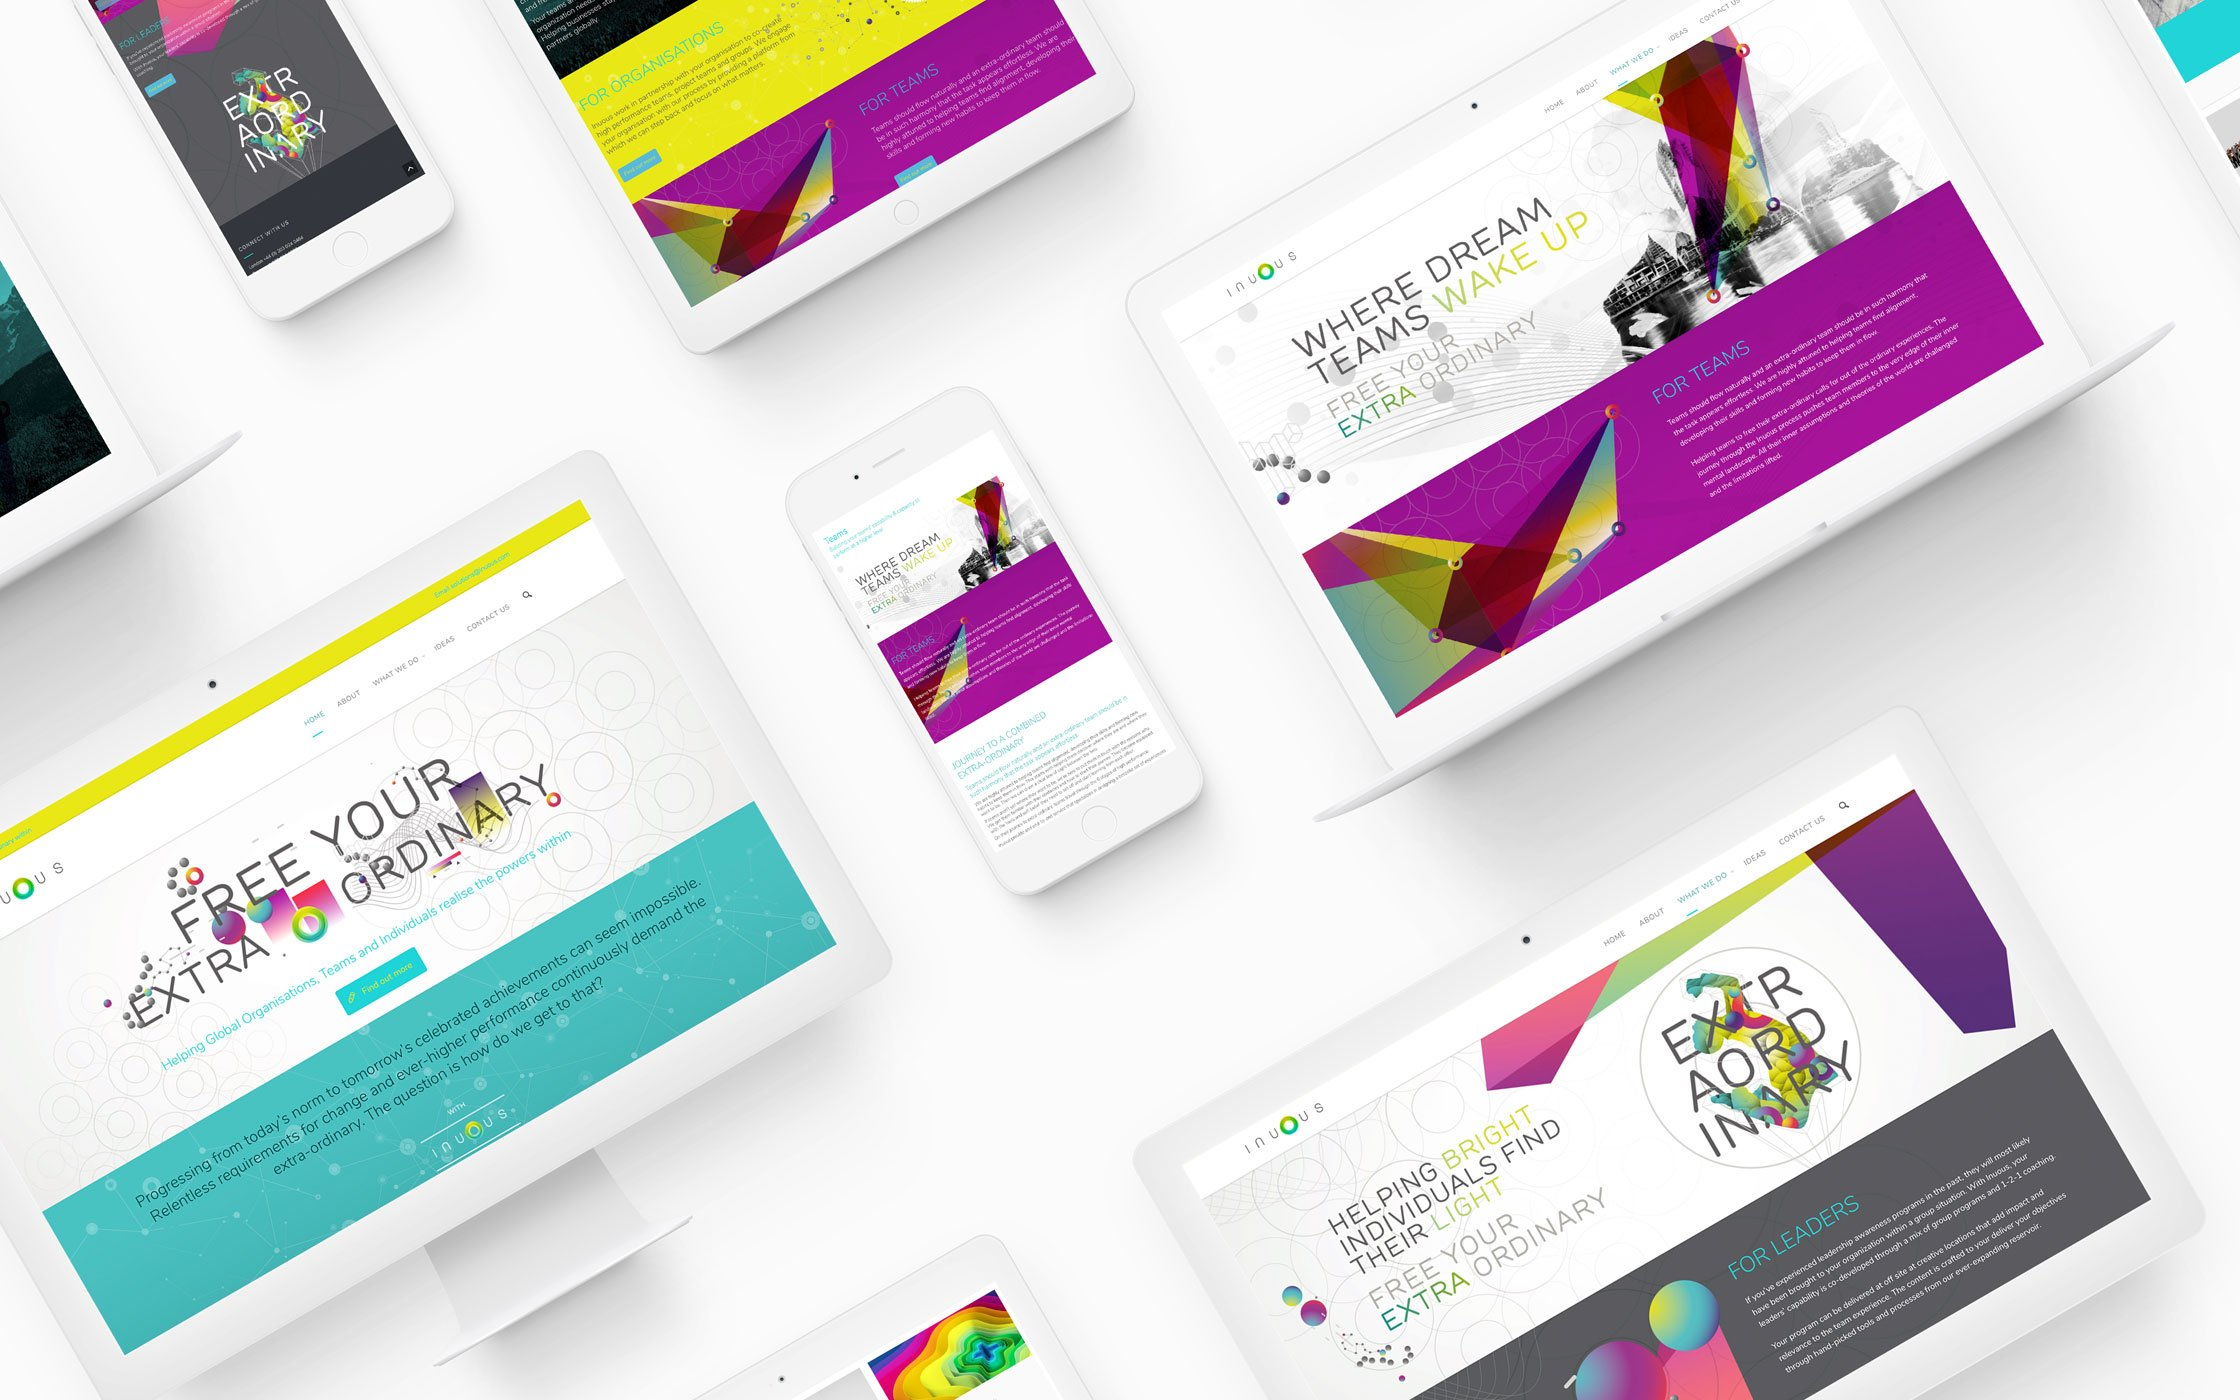 Responsive website -Inuous